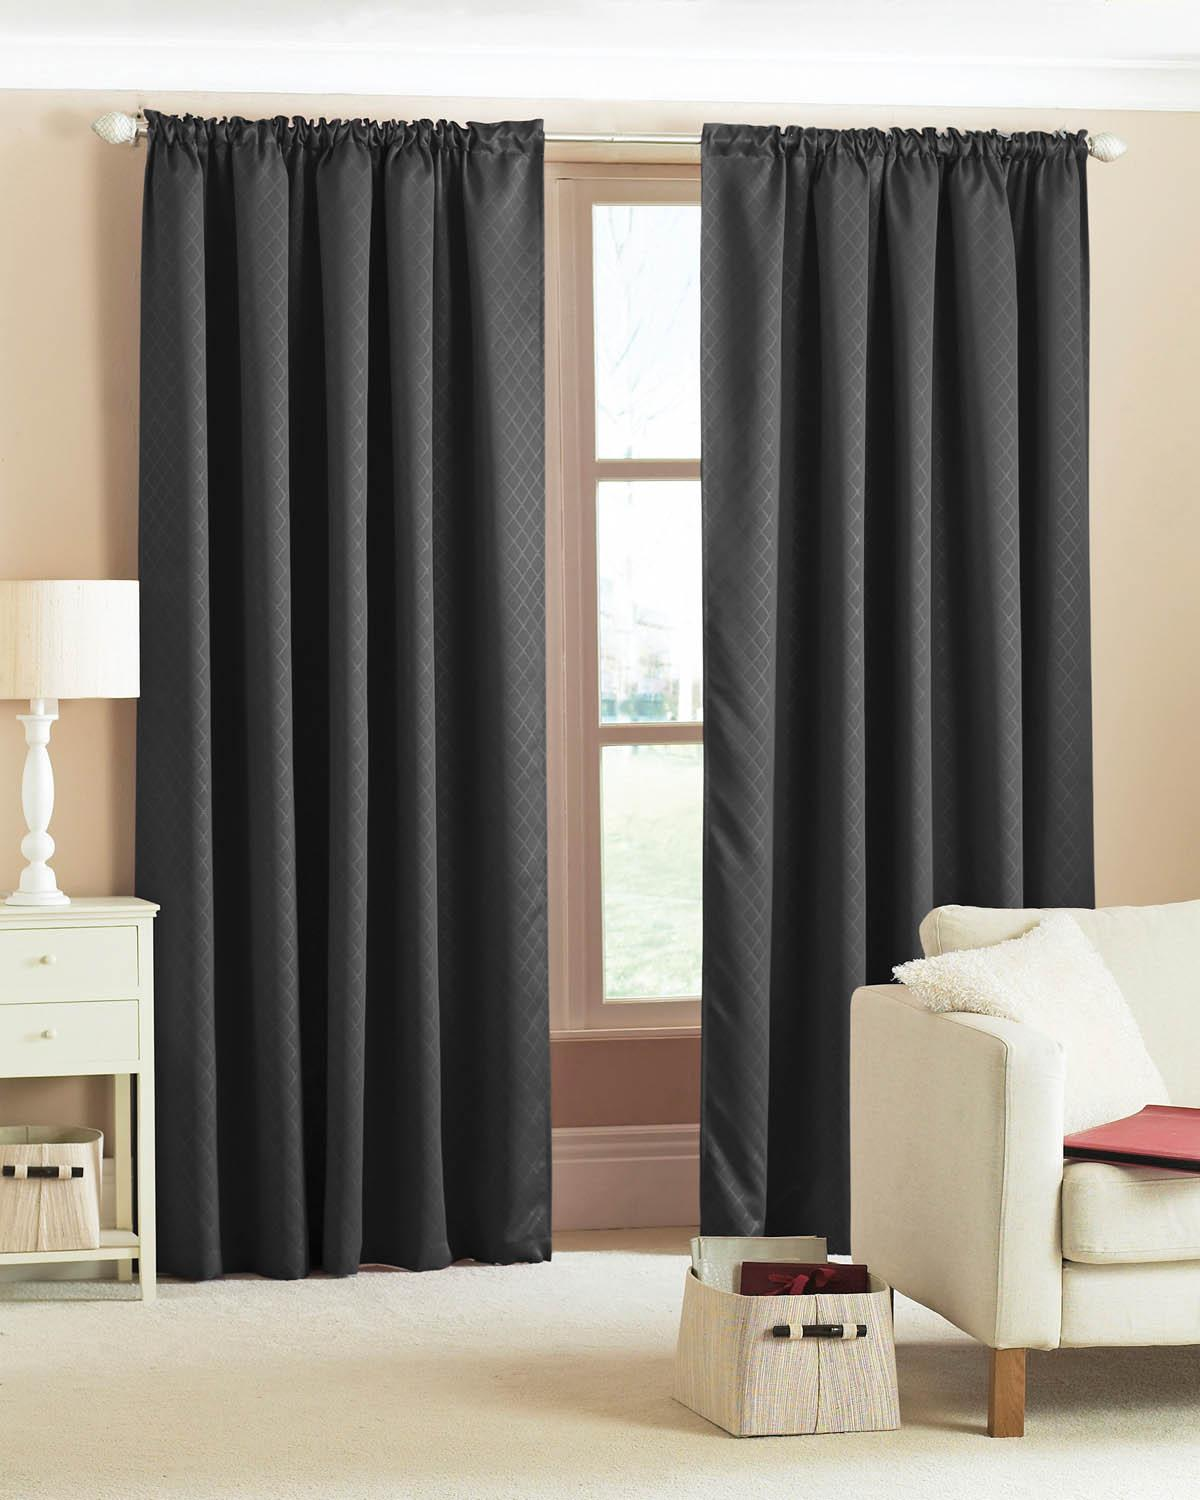 Diamond Woven Blackout Curtains Black  Free UK Delivery  Terrys ...